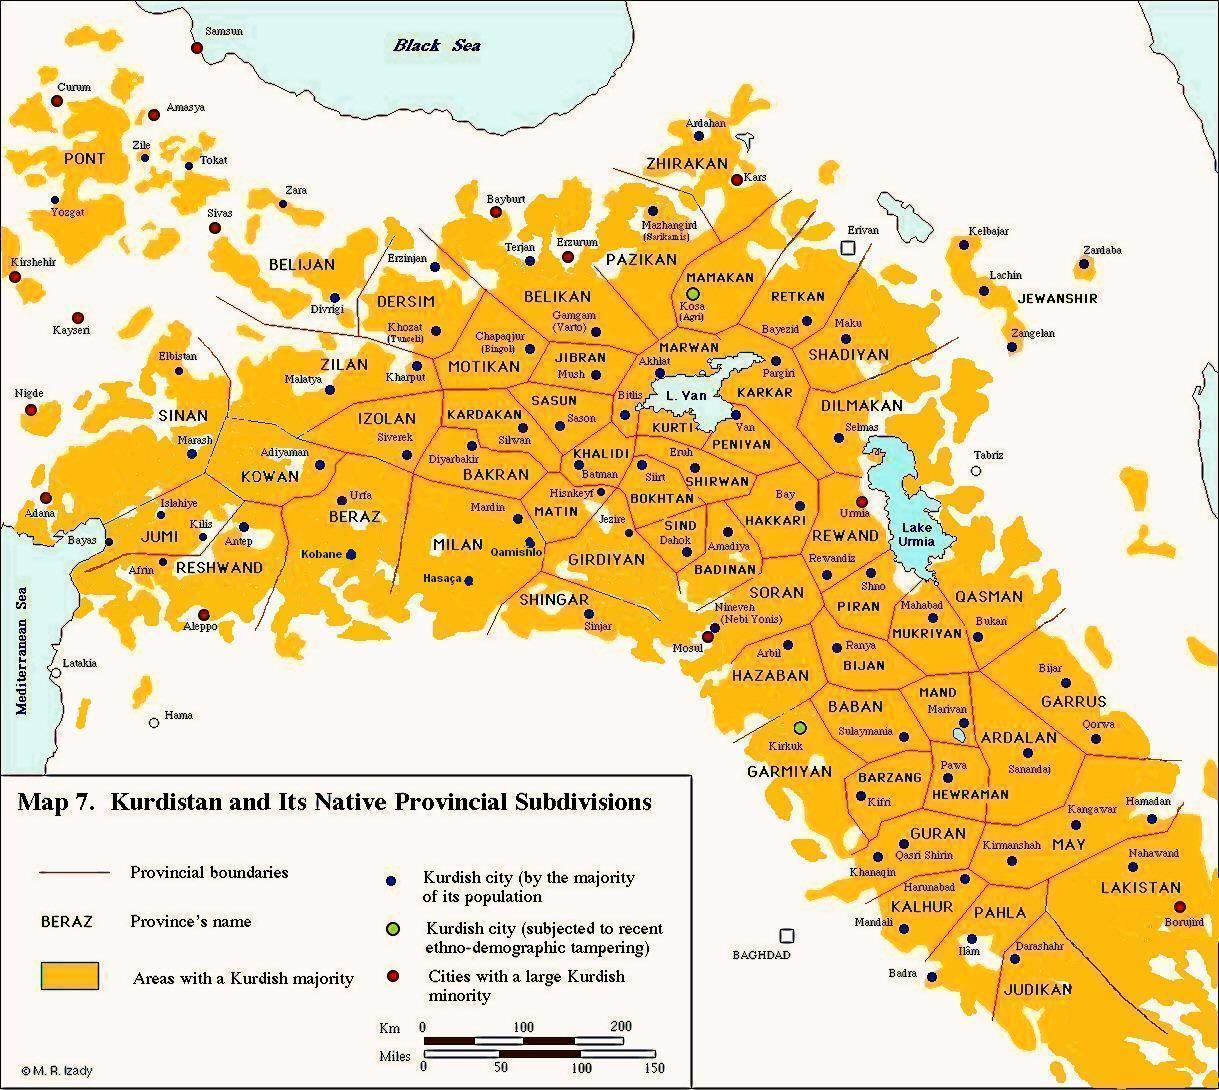 Cartina Kurdistan.200 Middle East Region Maps Ideas In 2021 Historical Maps Map History